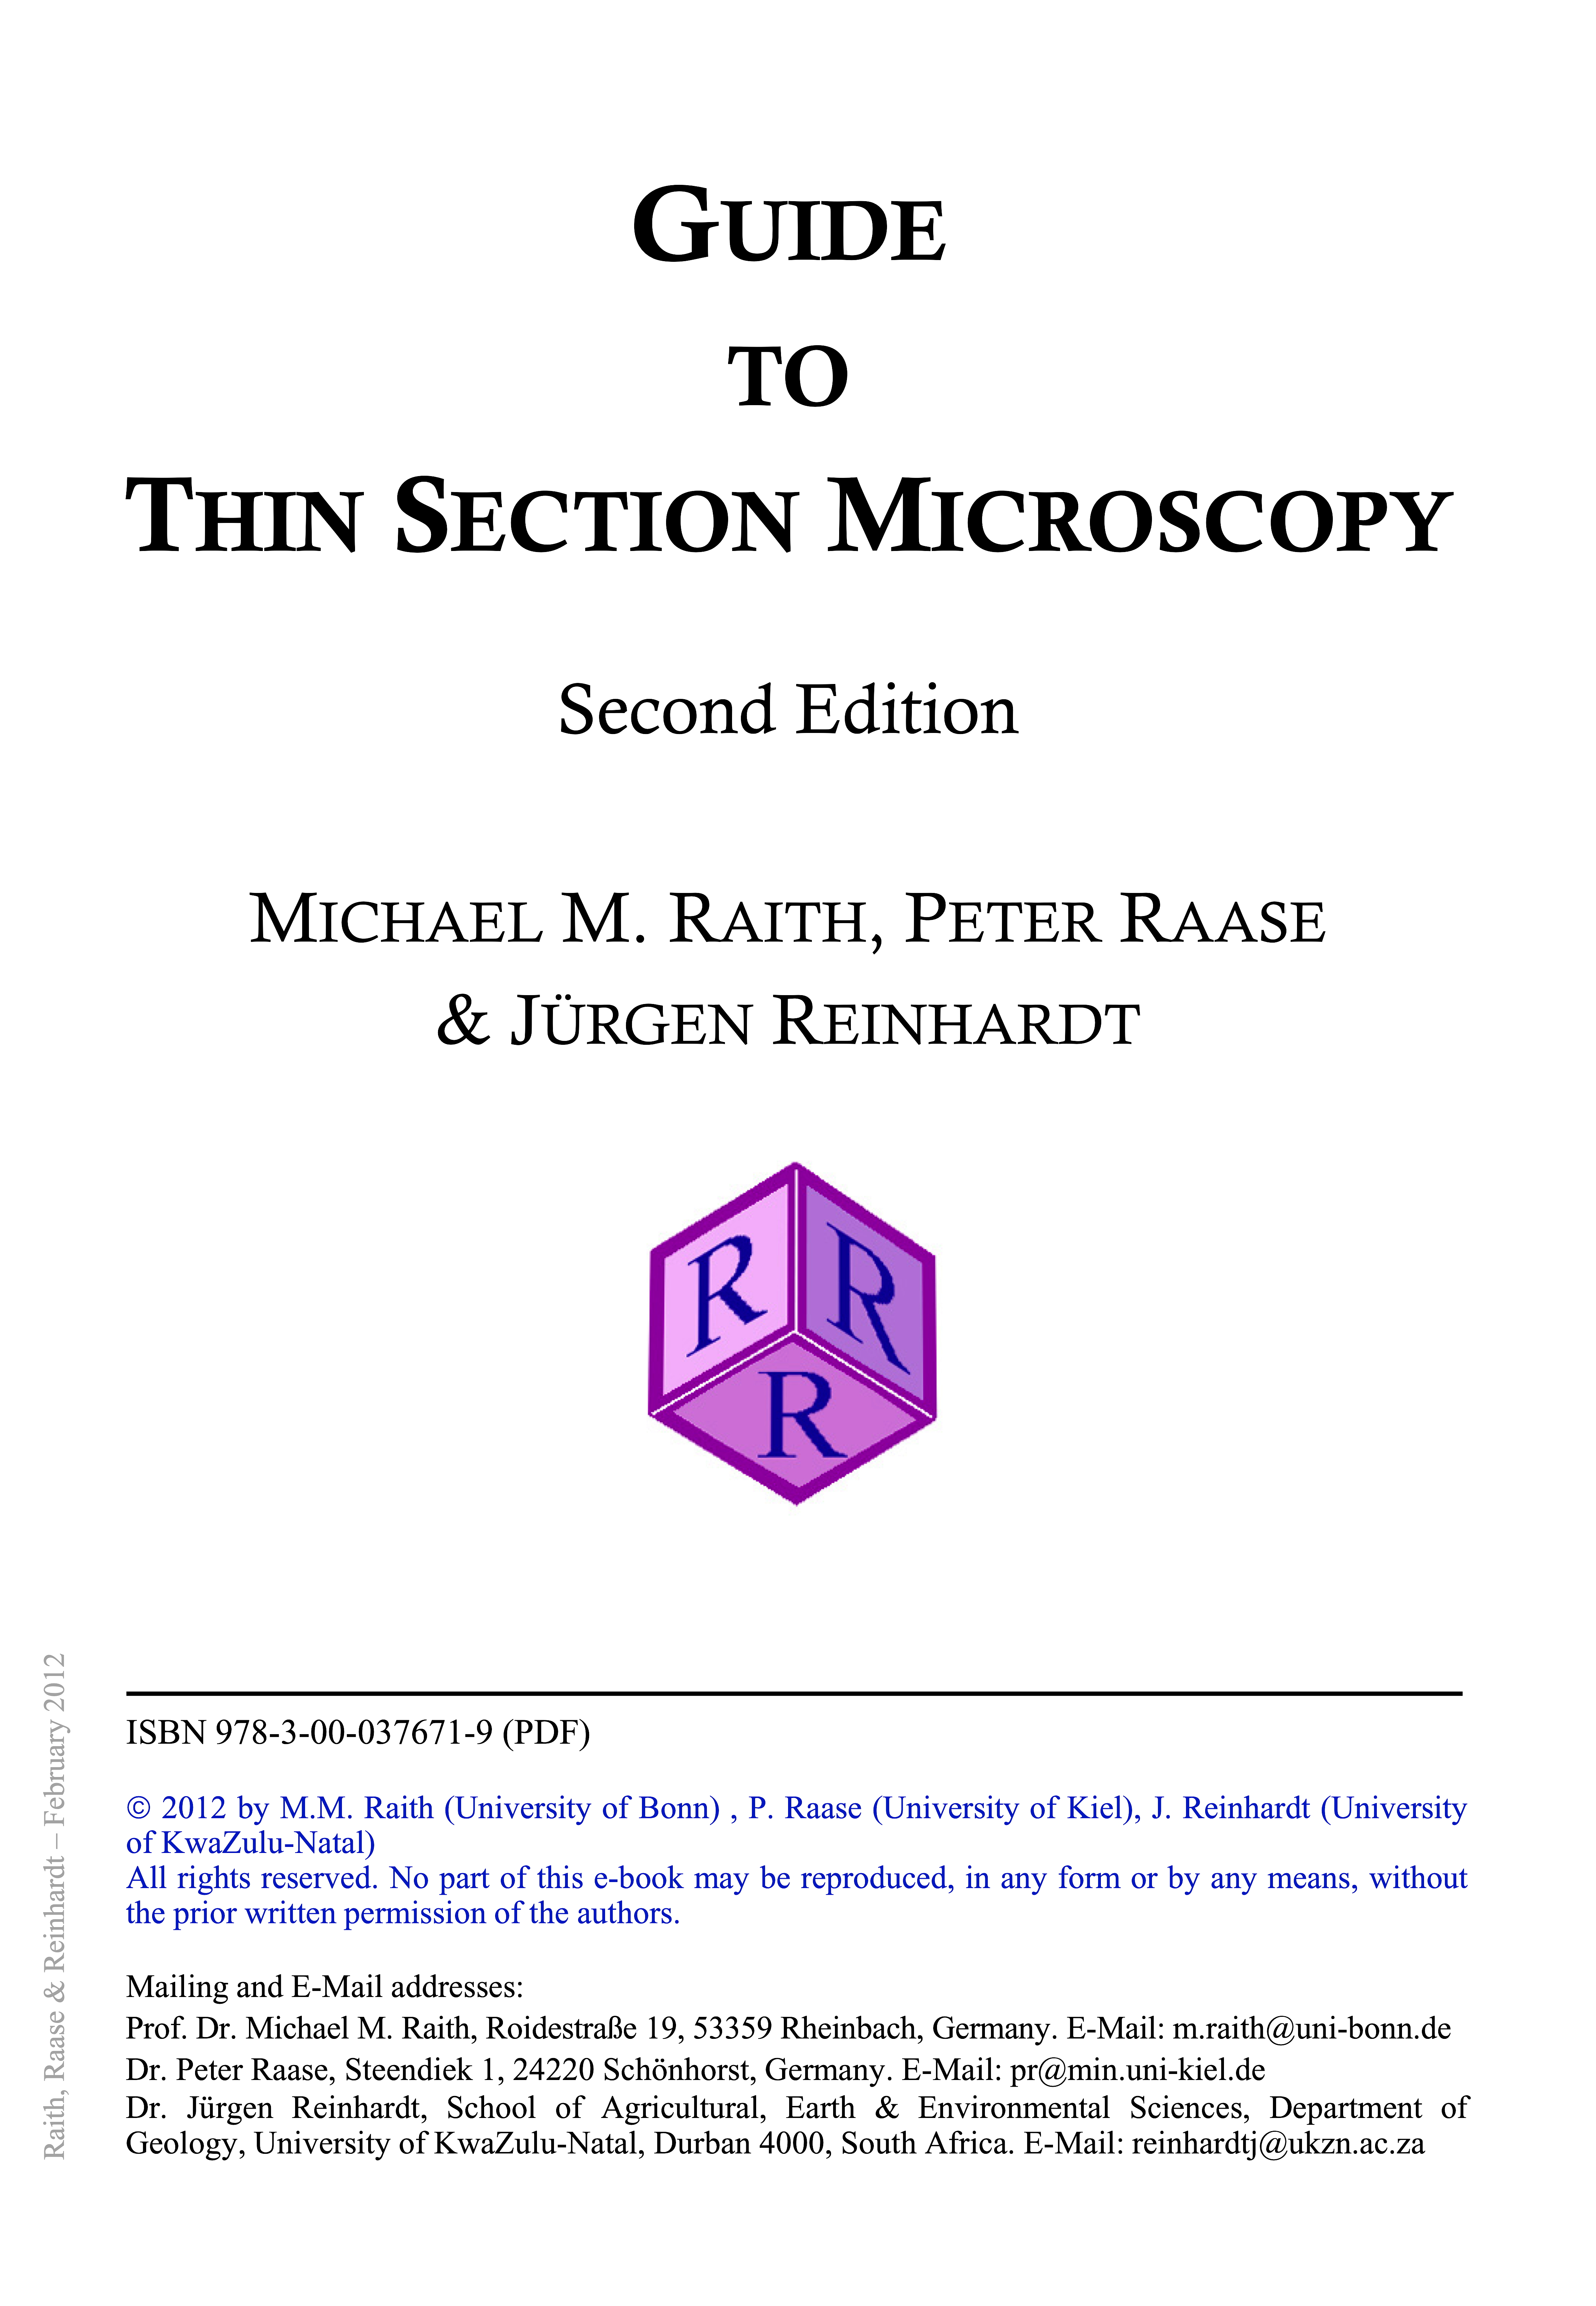 Cover of Guide to Thin Section Microscopy